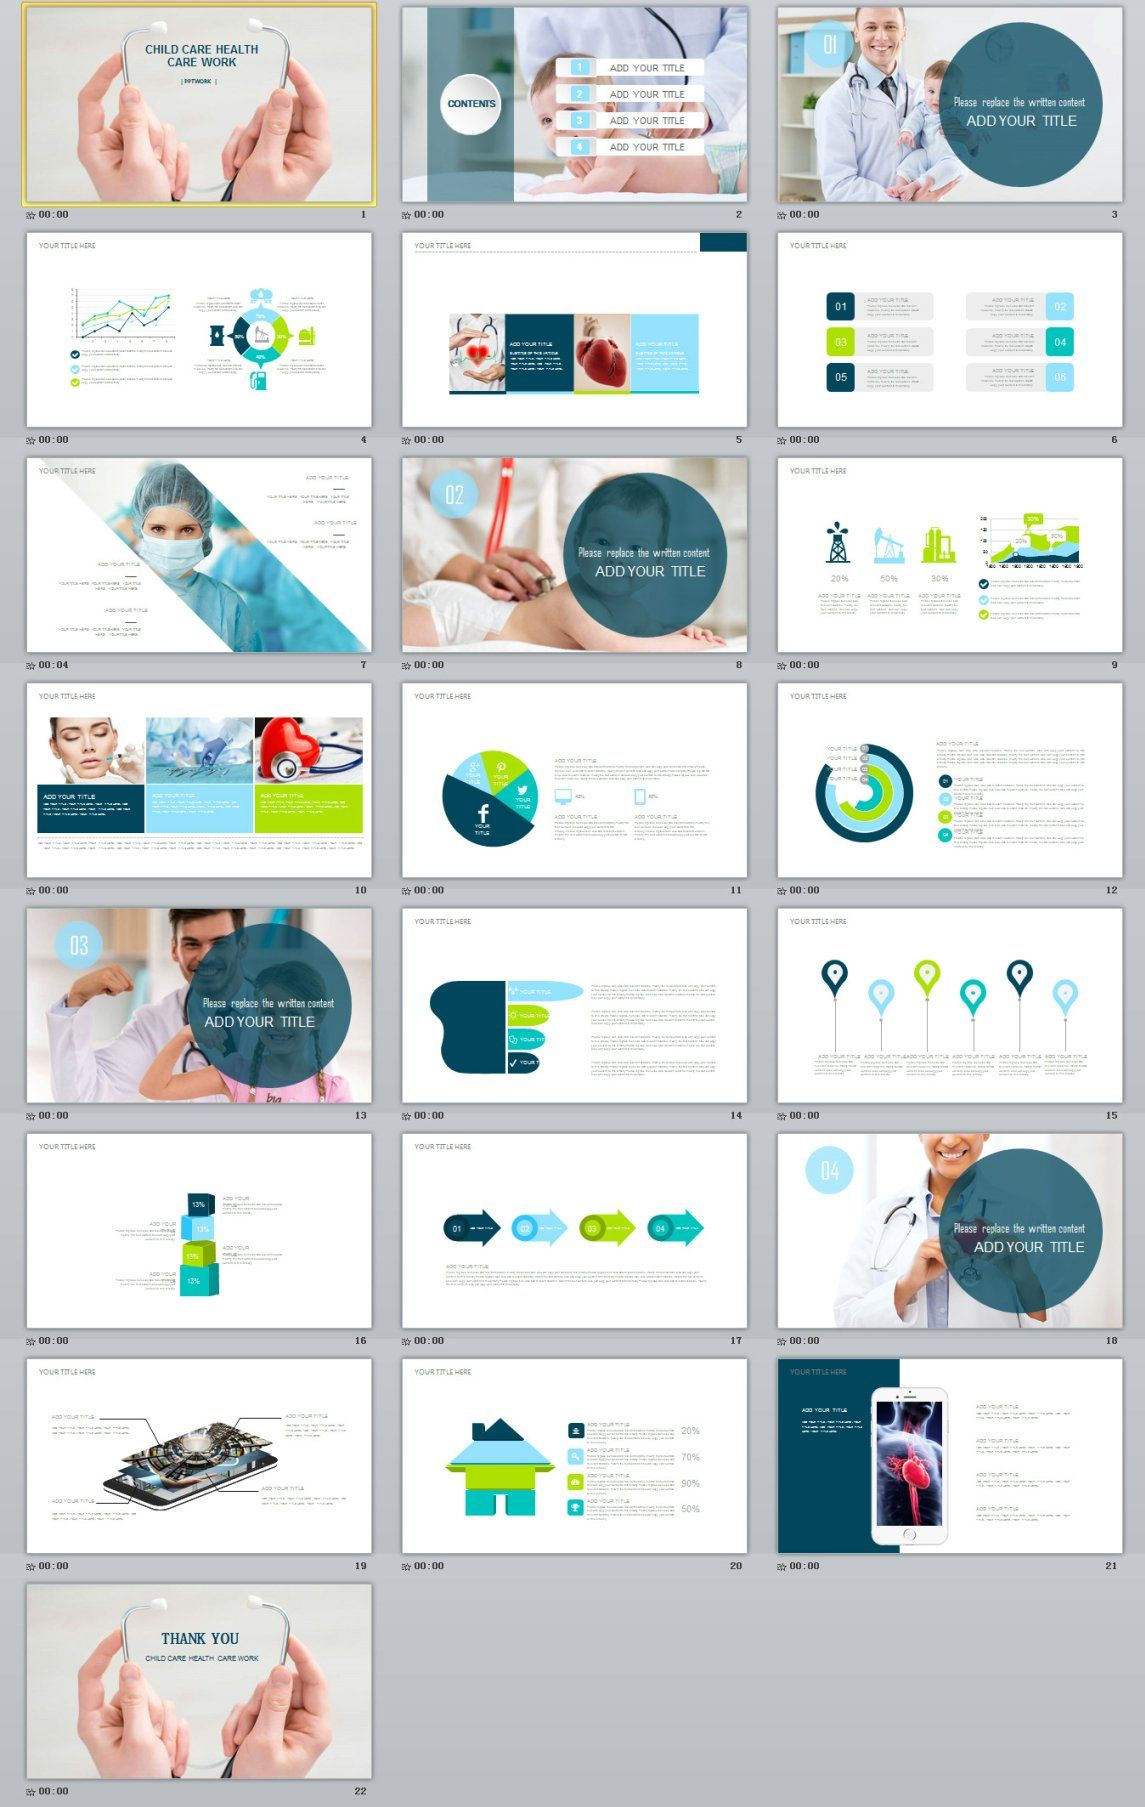 Simple Medical And Health Design Powerpoint Template Pcslide Com Powerpoint Presentatio Powerpoint Design Templates Powerpoint Templates Book Design Layout